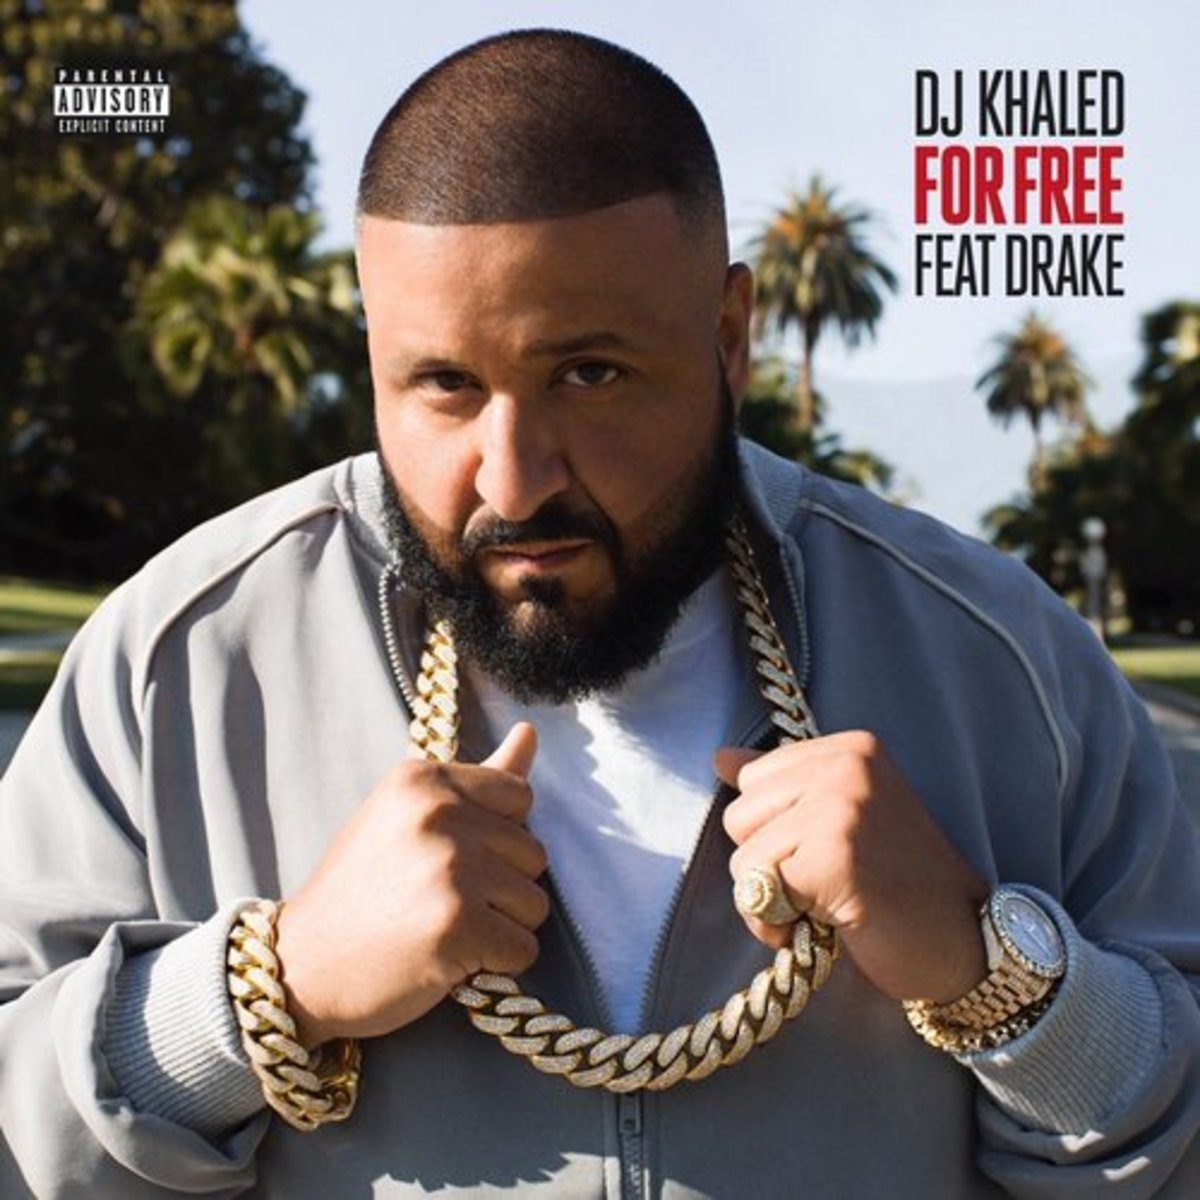 dj-khaled-for-free.jpg